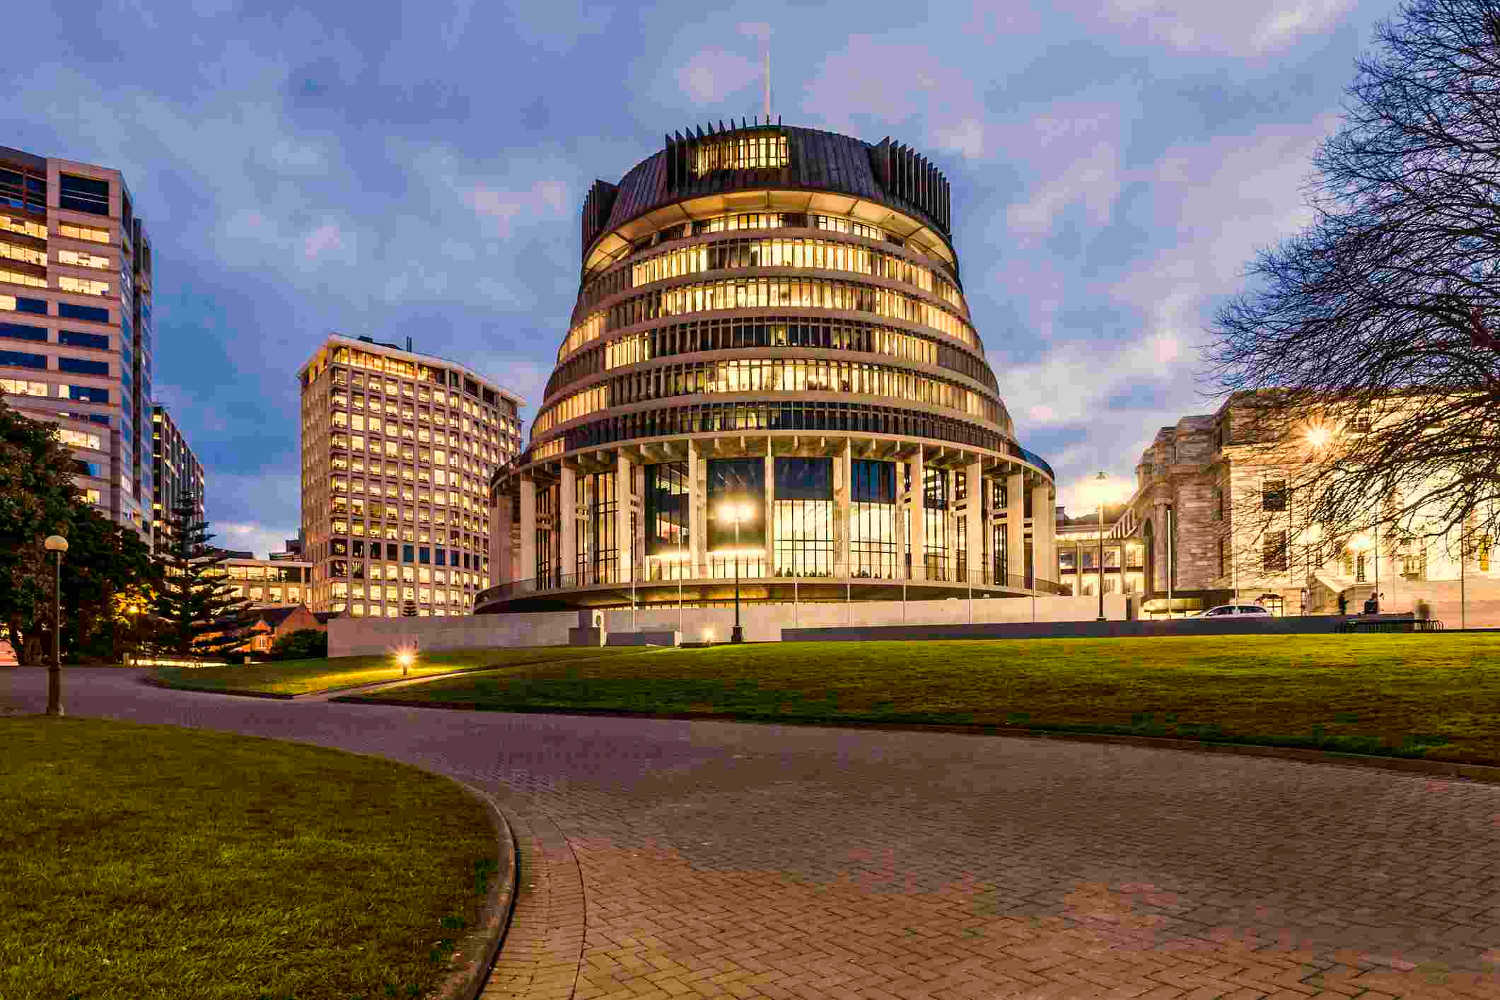 The Beehive, New Zealand's Parliament building, at twilight